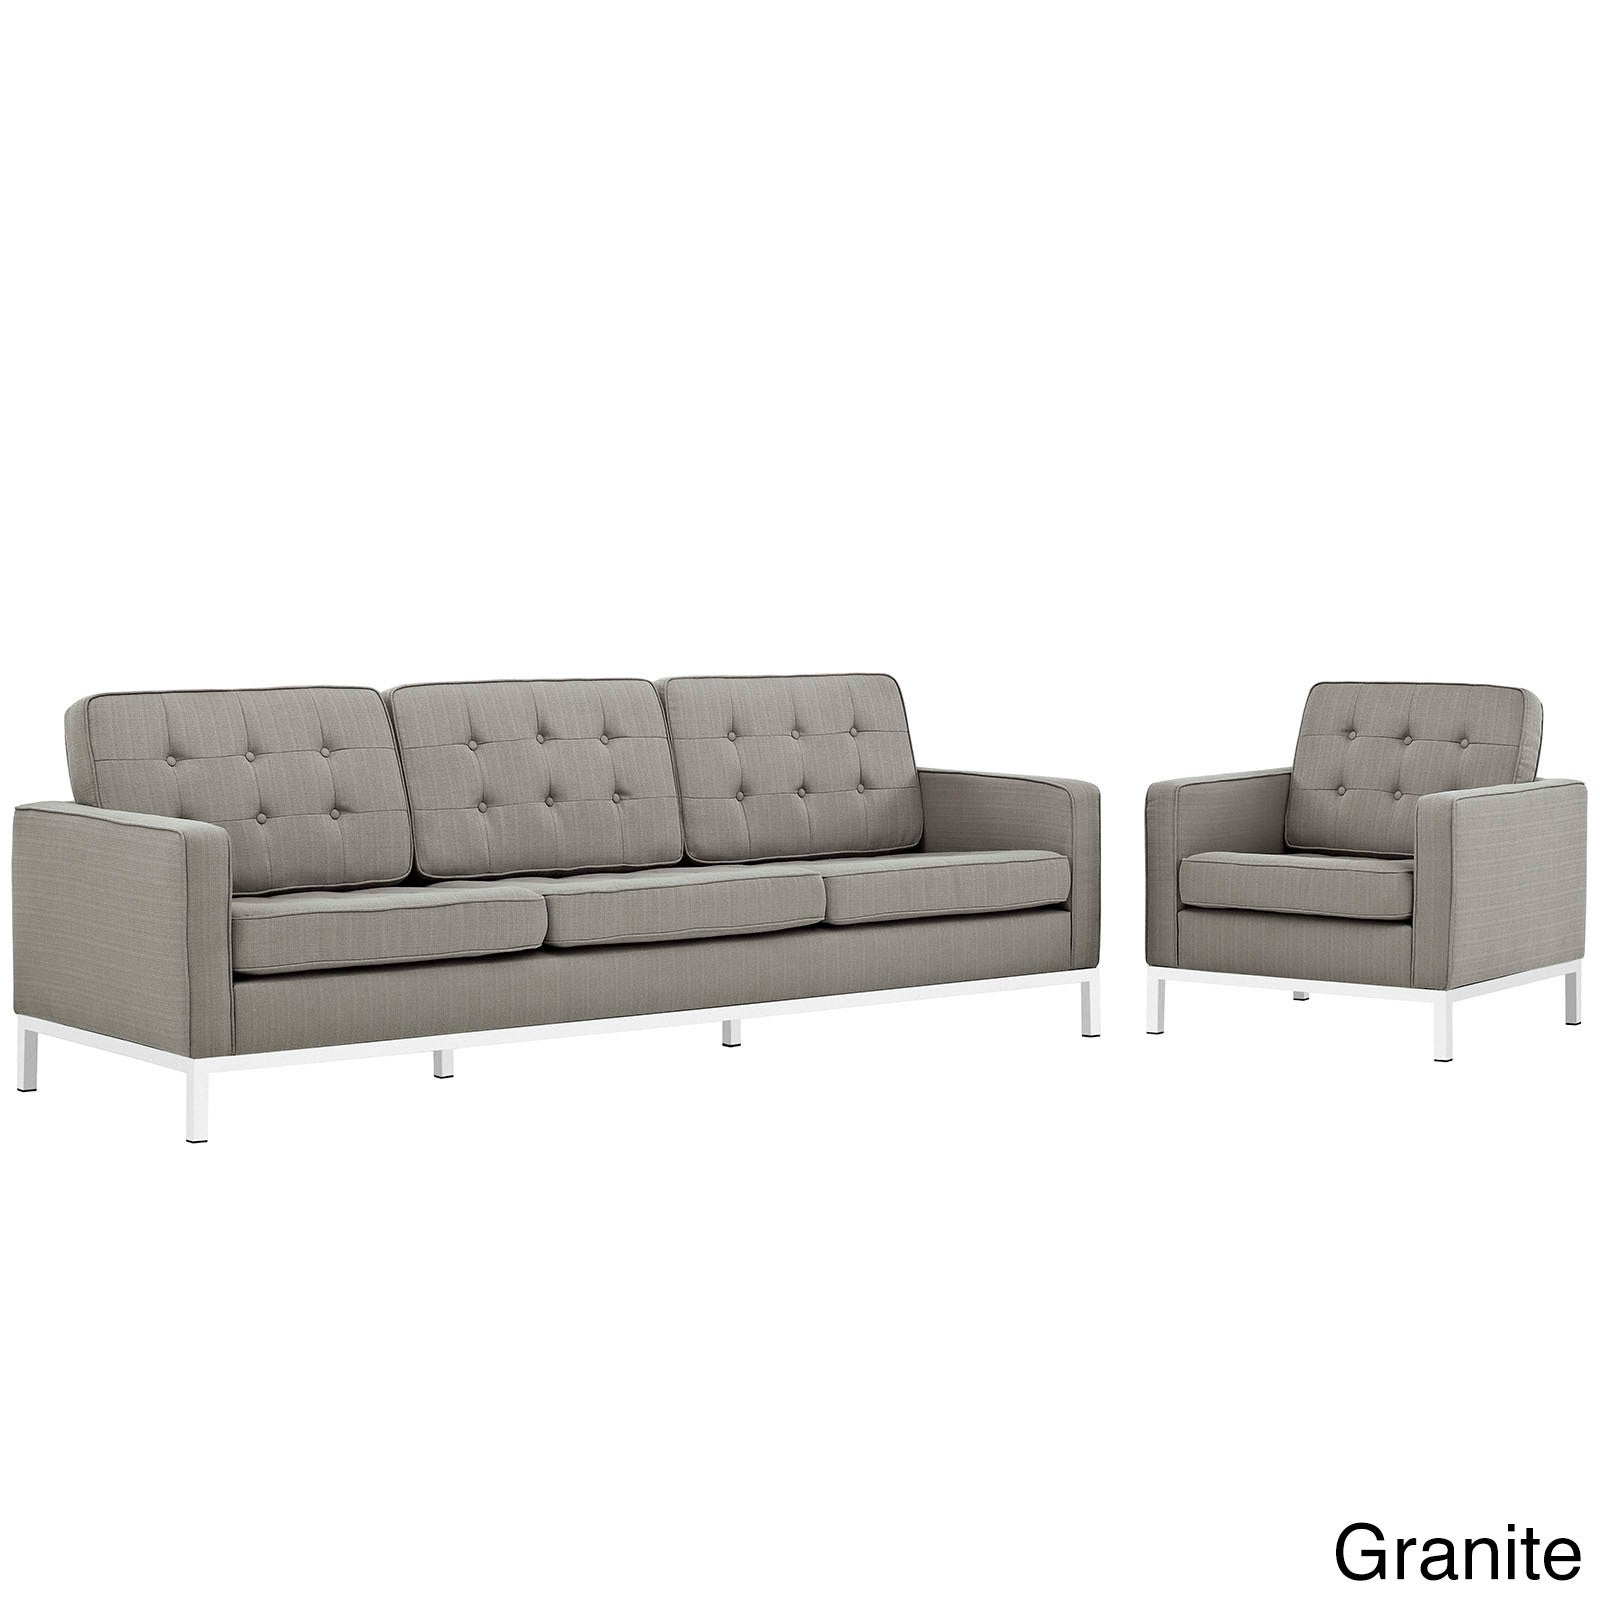 Loft Fabric Upholstered Sofa and Armchair Living Room Set - Free ...